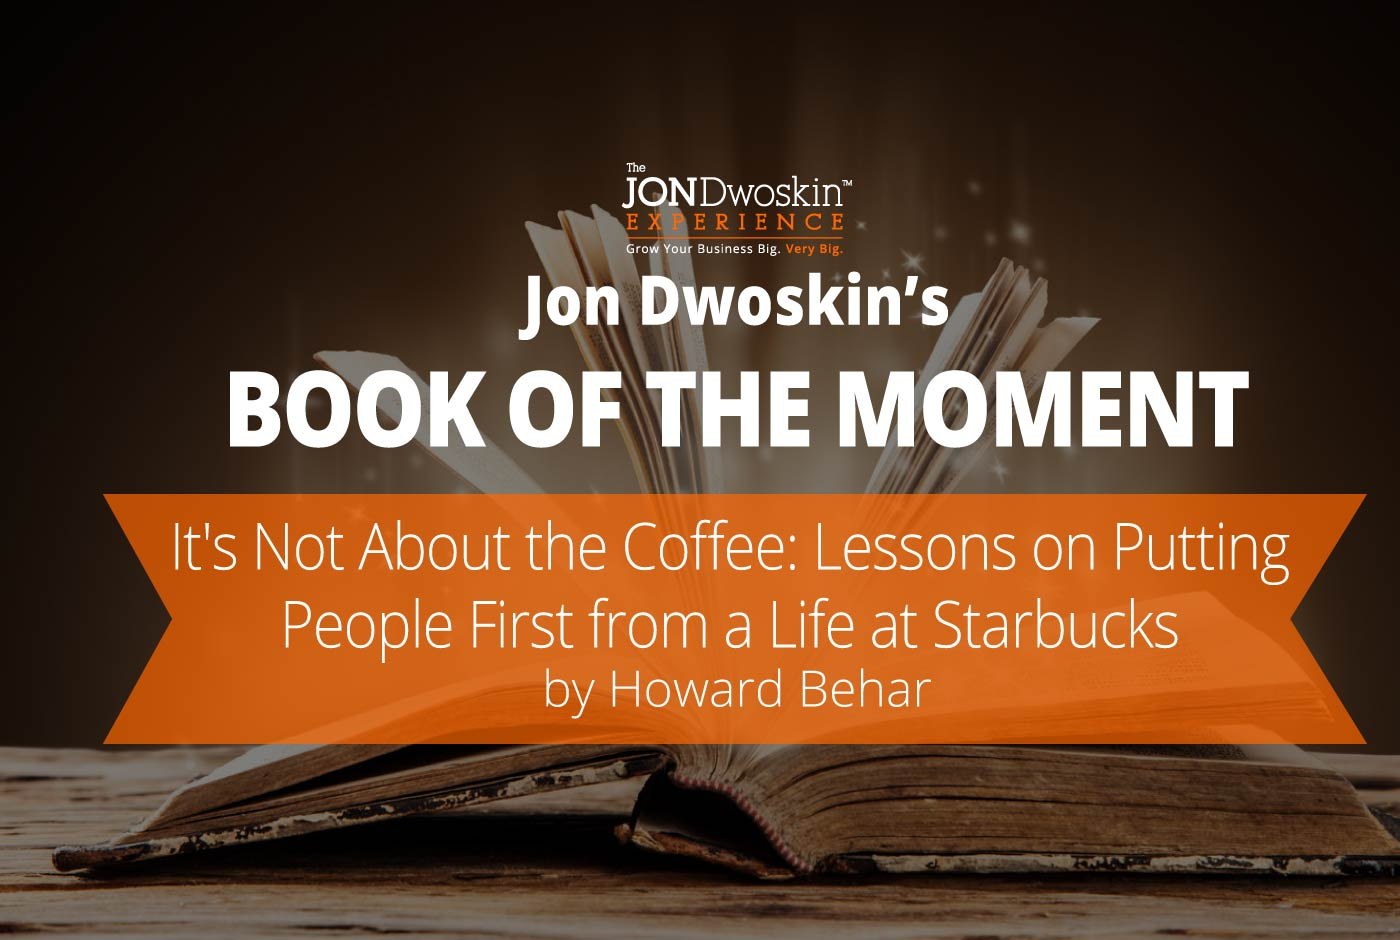 Jon Dwoskin's Book of the Moment